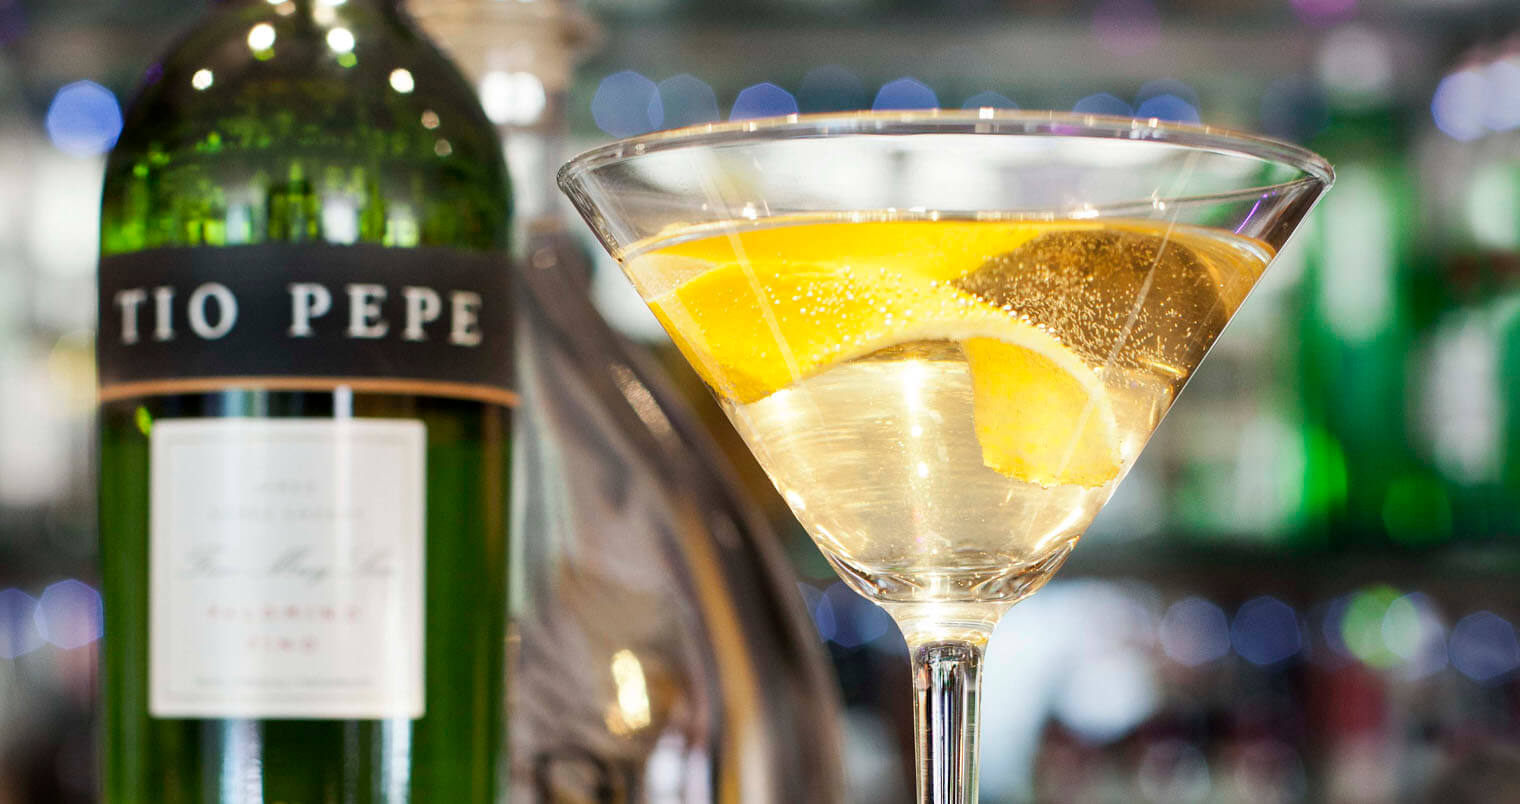 Tío Pepe Martini, bottle and martini cocktail, featured image